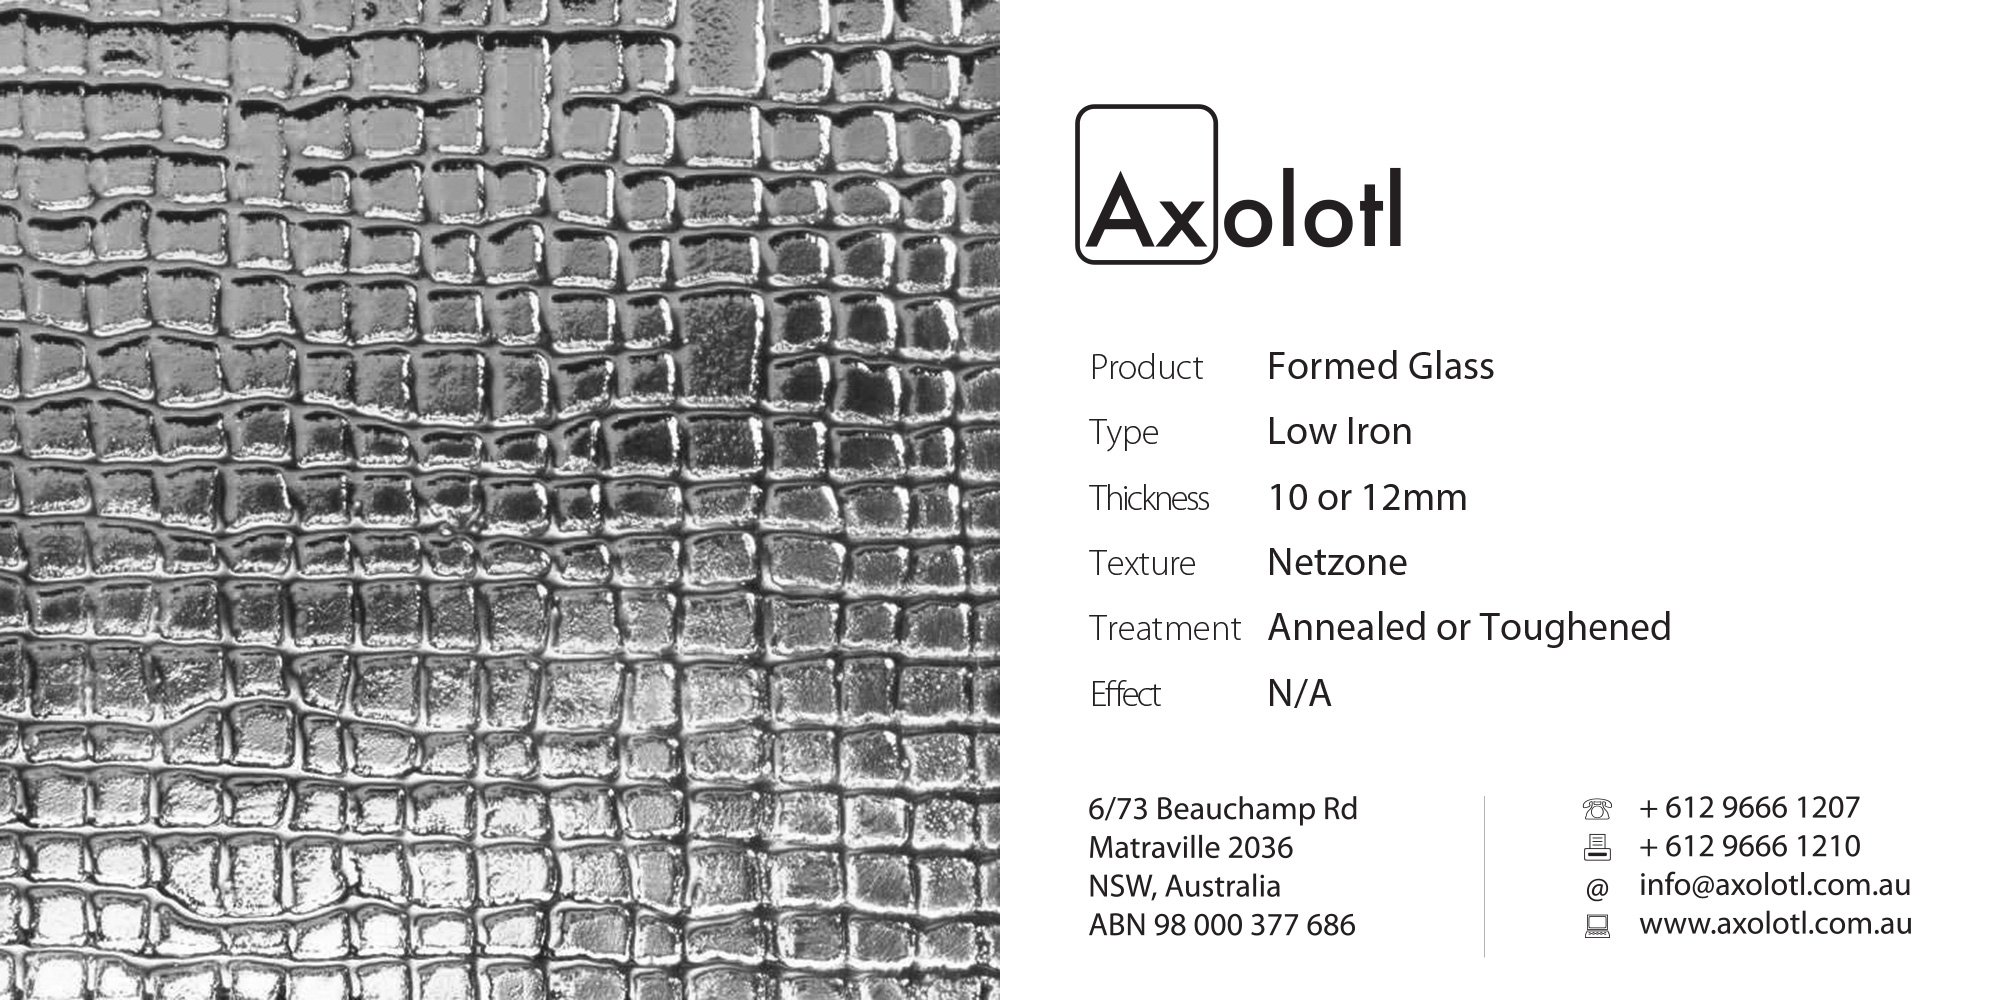 Axolotl_Net_Formed_Glass.jpg